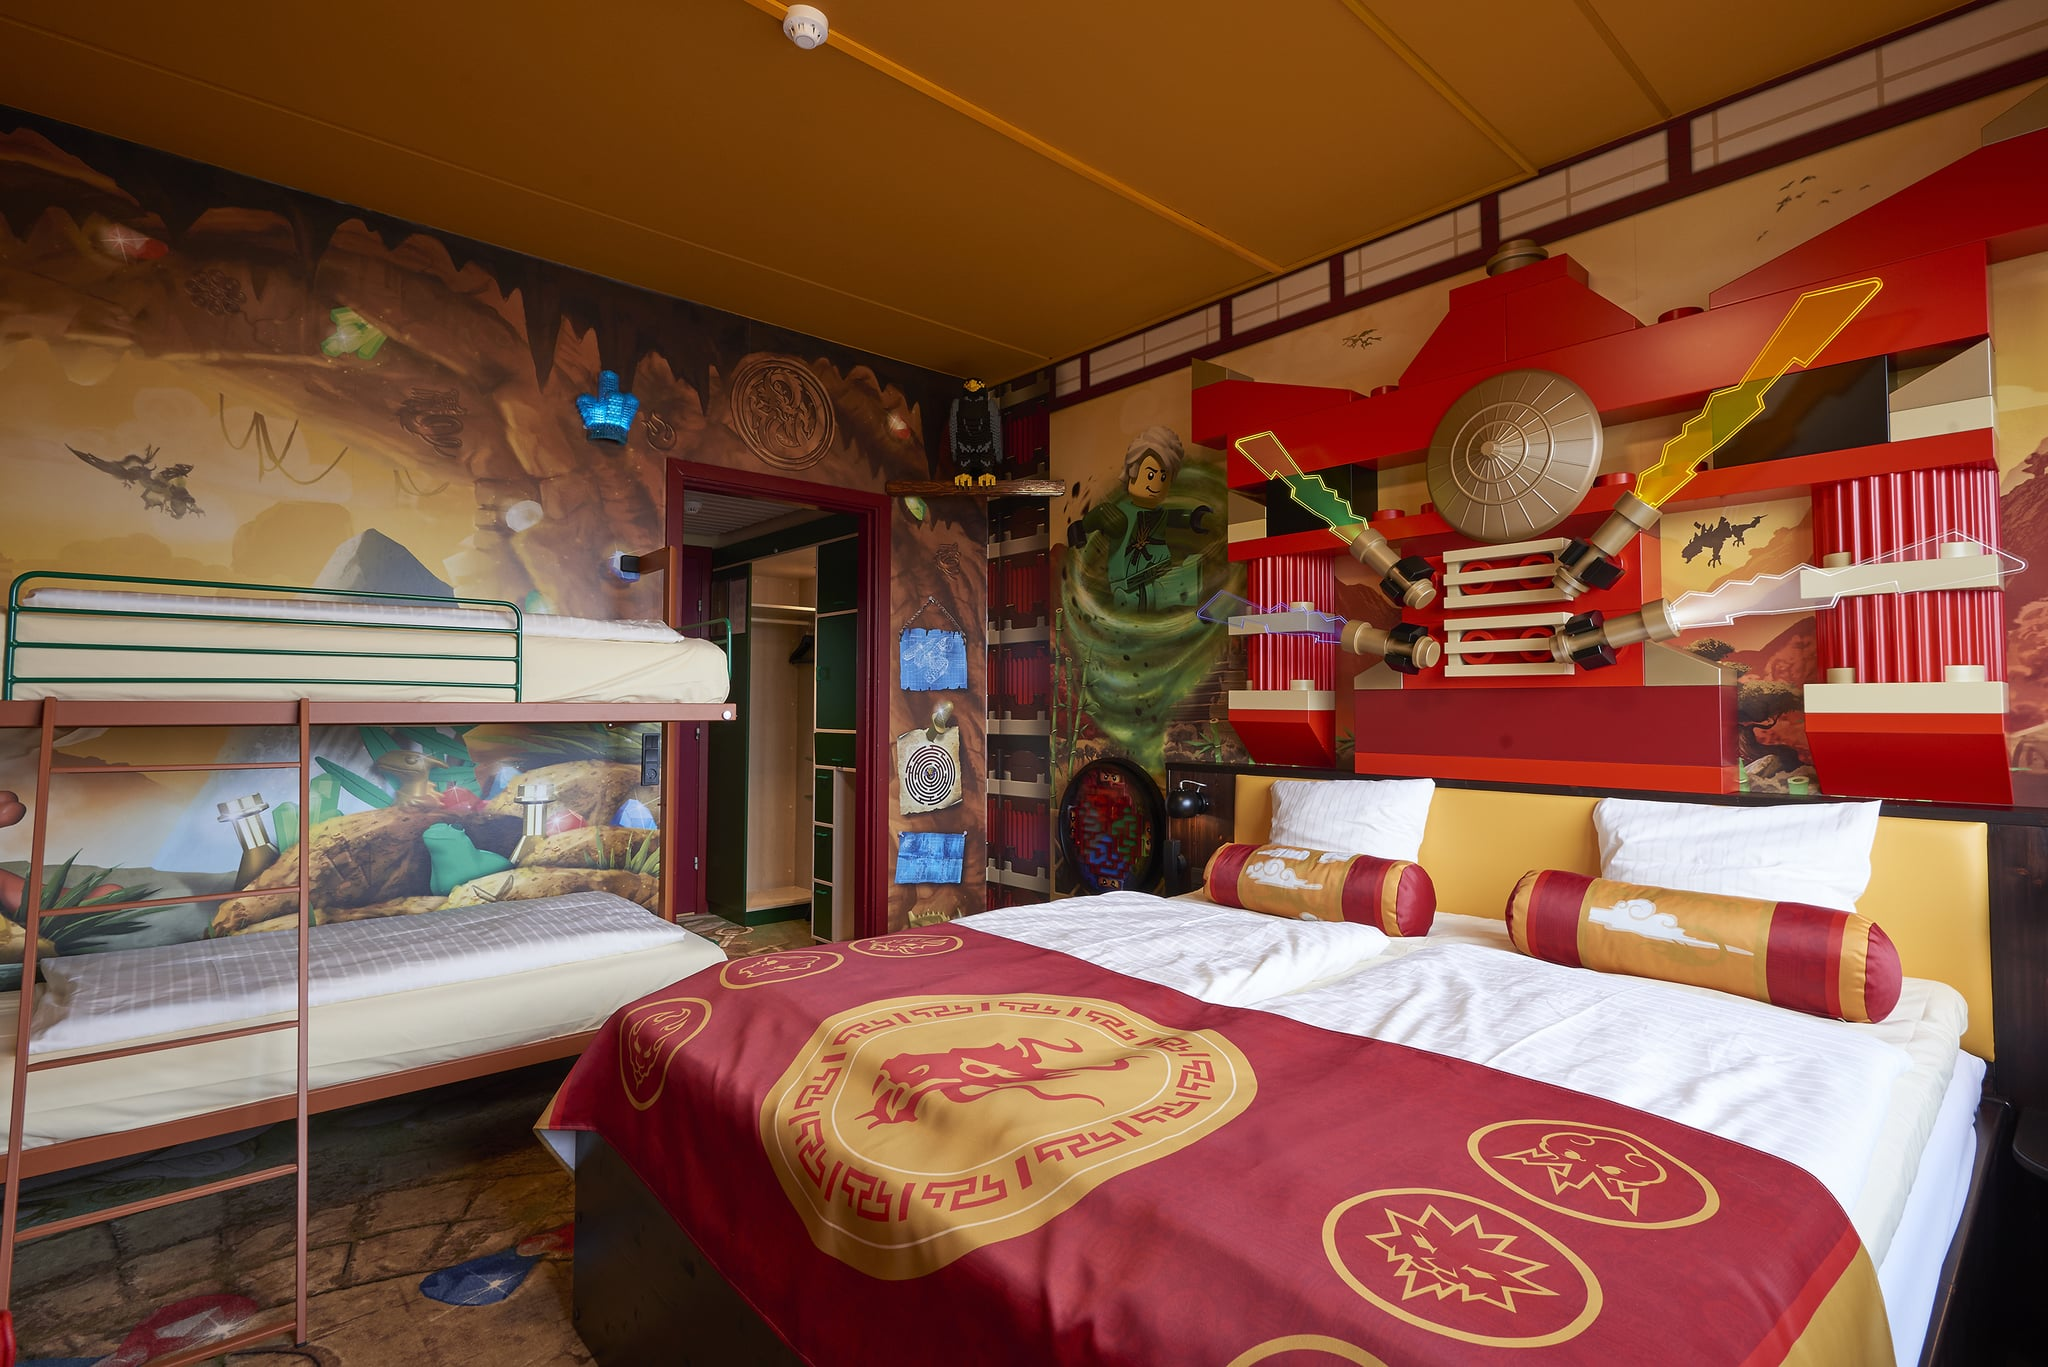 Lego Ninjago Themed Room Legoland New York Is Opening In July 2020 Get A Peek At What It Ll Look Like Popsugar Family Photo 43